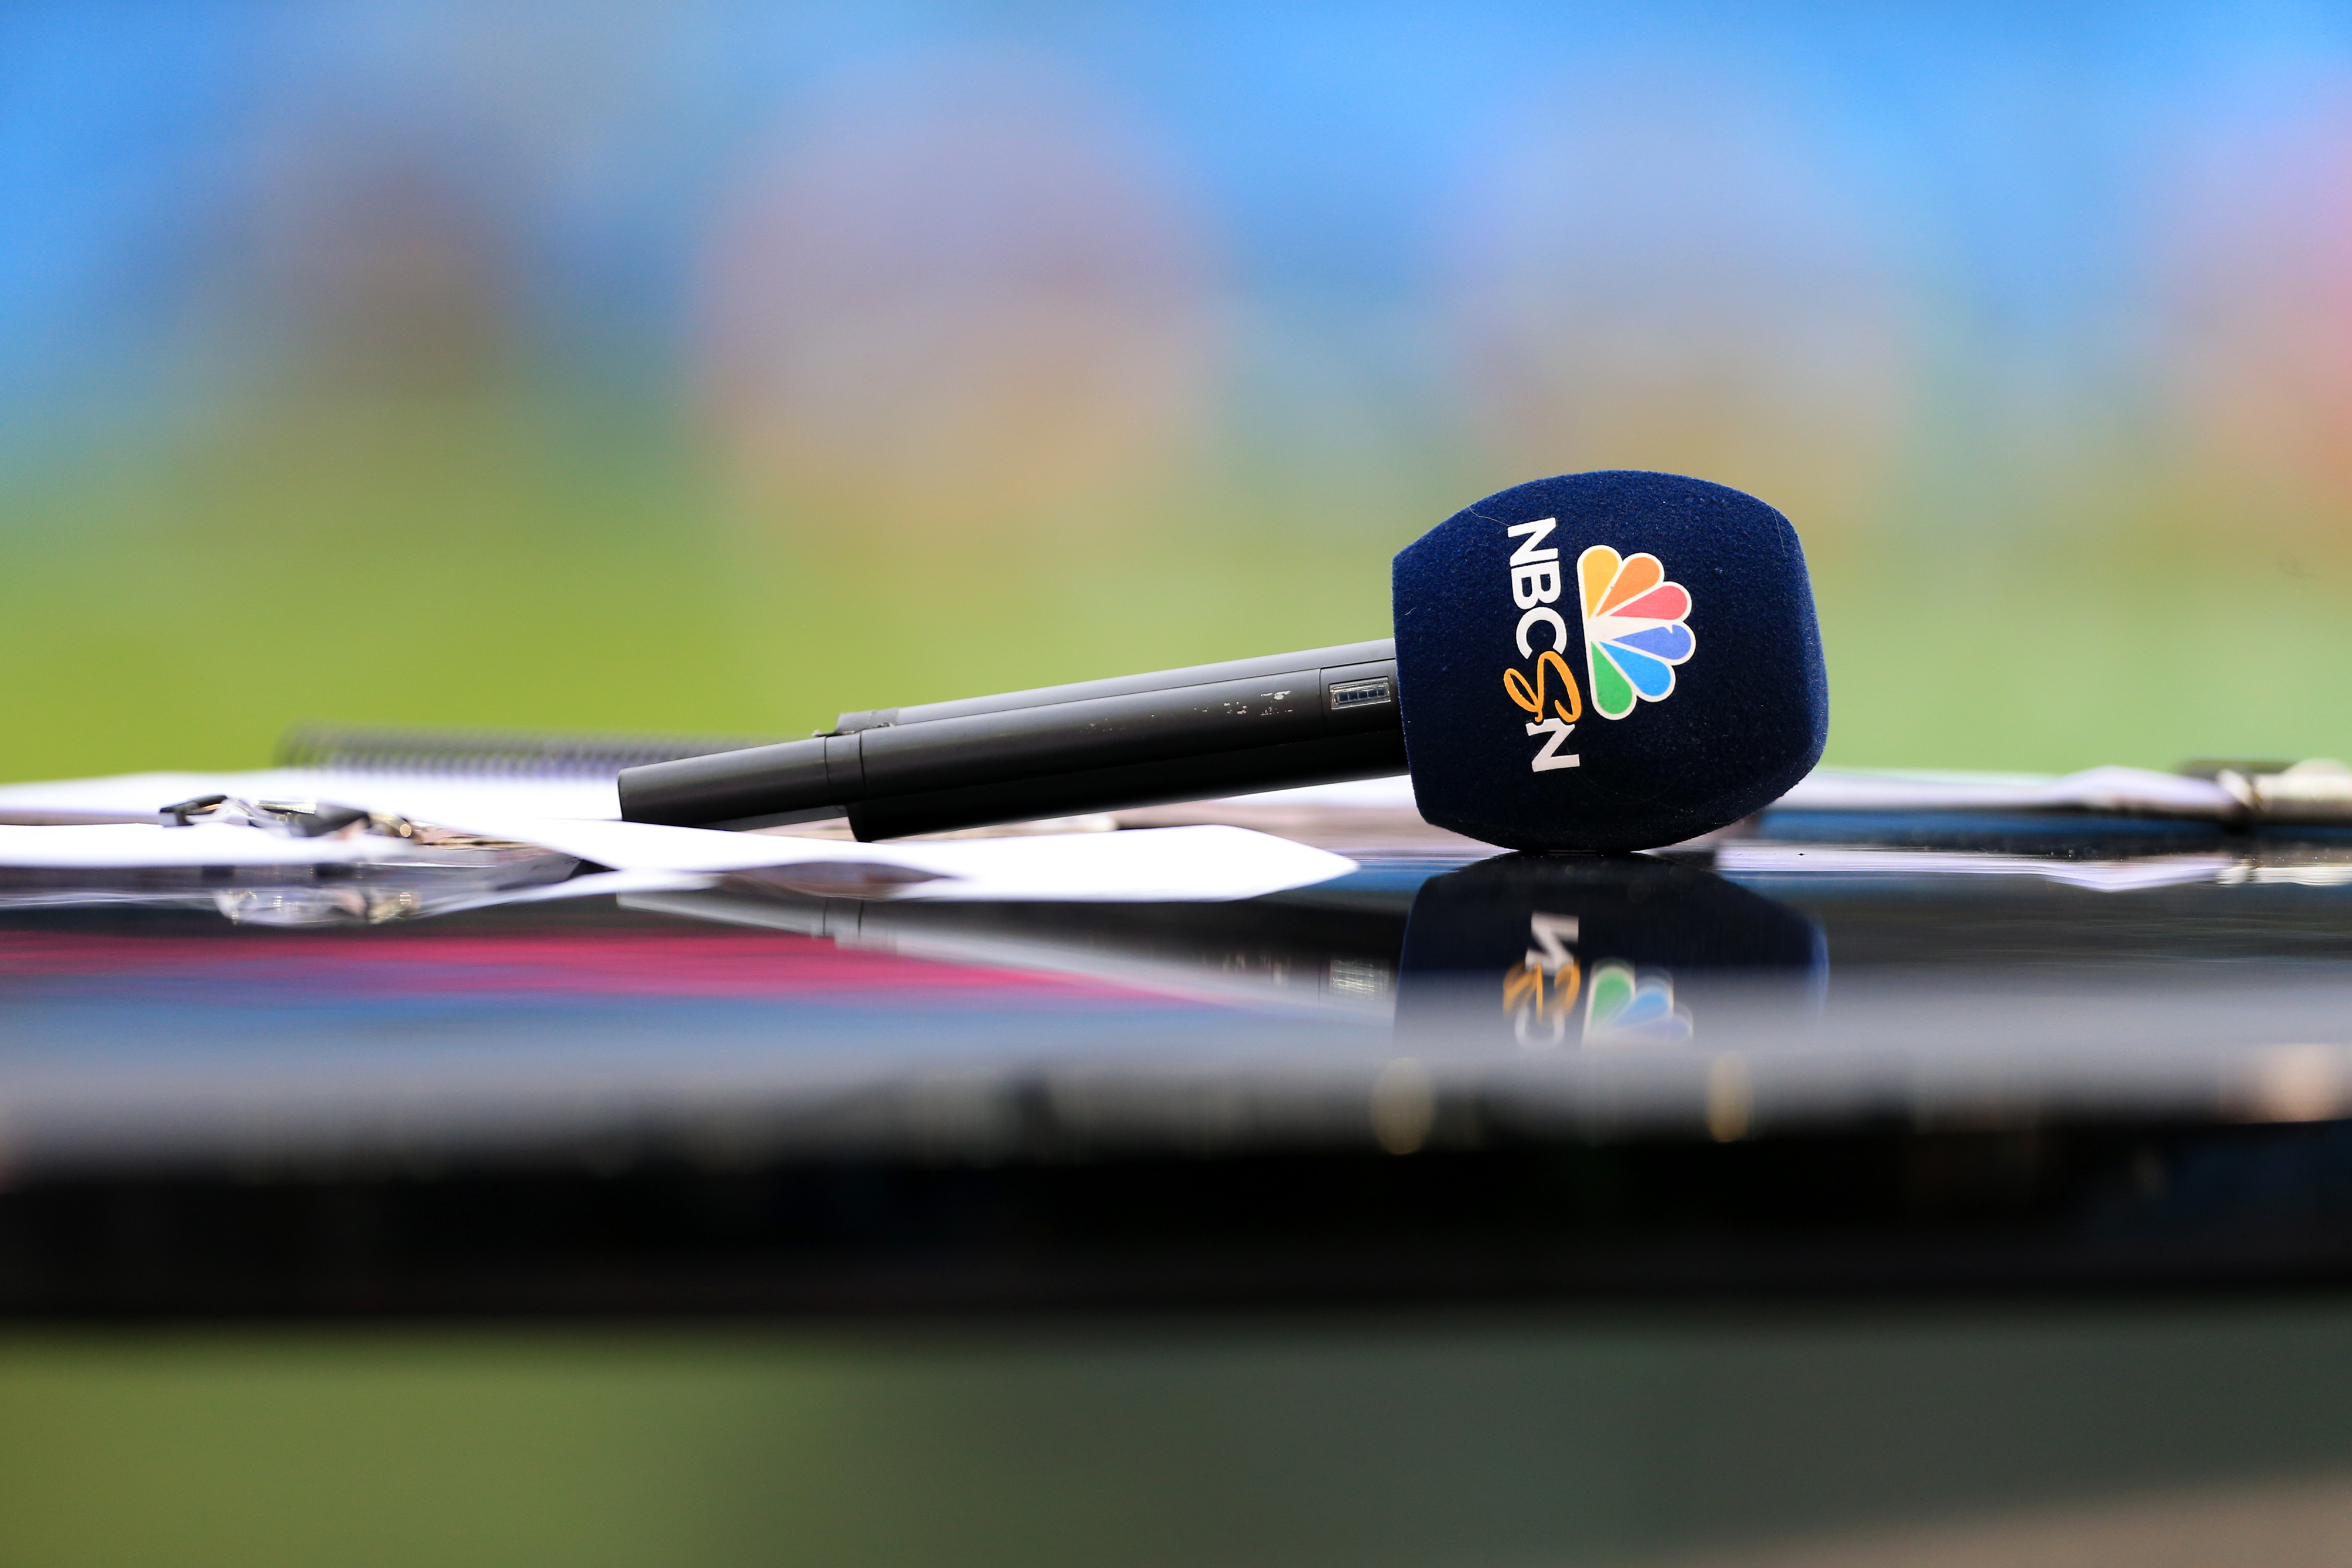 NBC is shutting down its sports cable channel as the bundle contracts